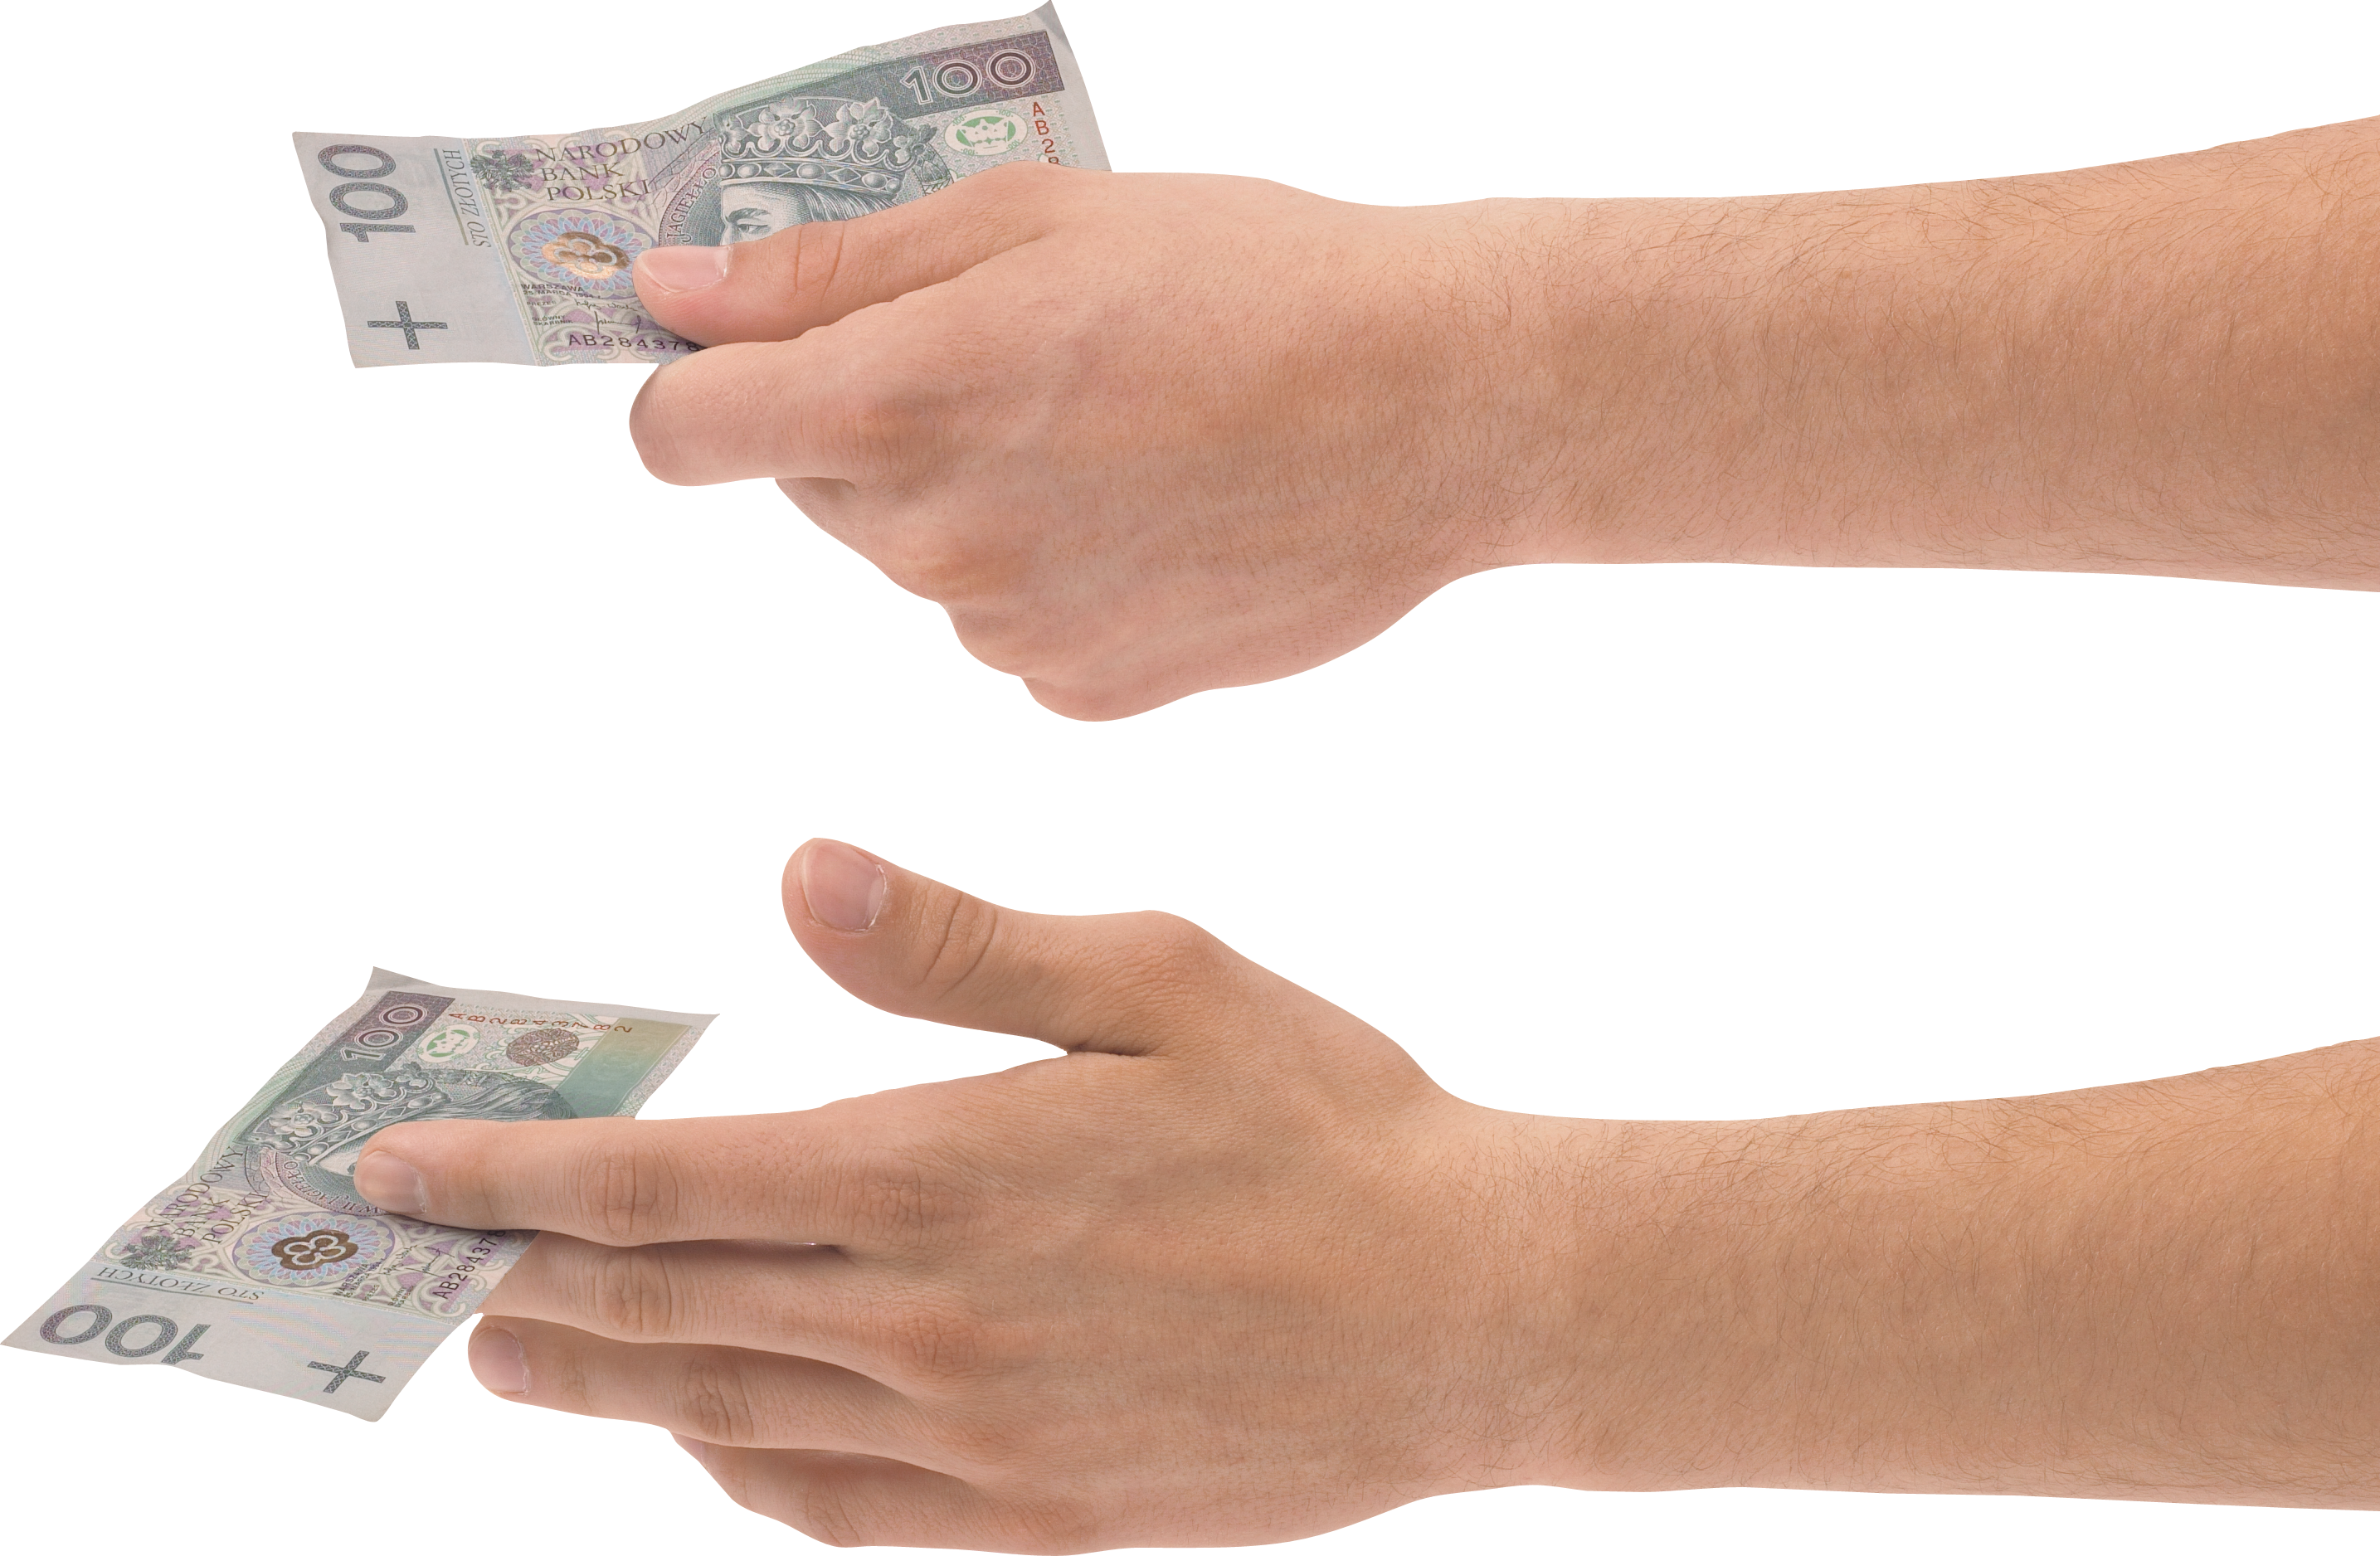 Handing out money clipart banner transparent library Hand Holding Money Two | Isolated Stock Photo by noBACKS.com banner transparent library